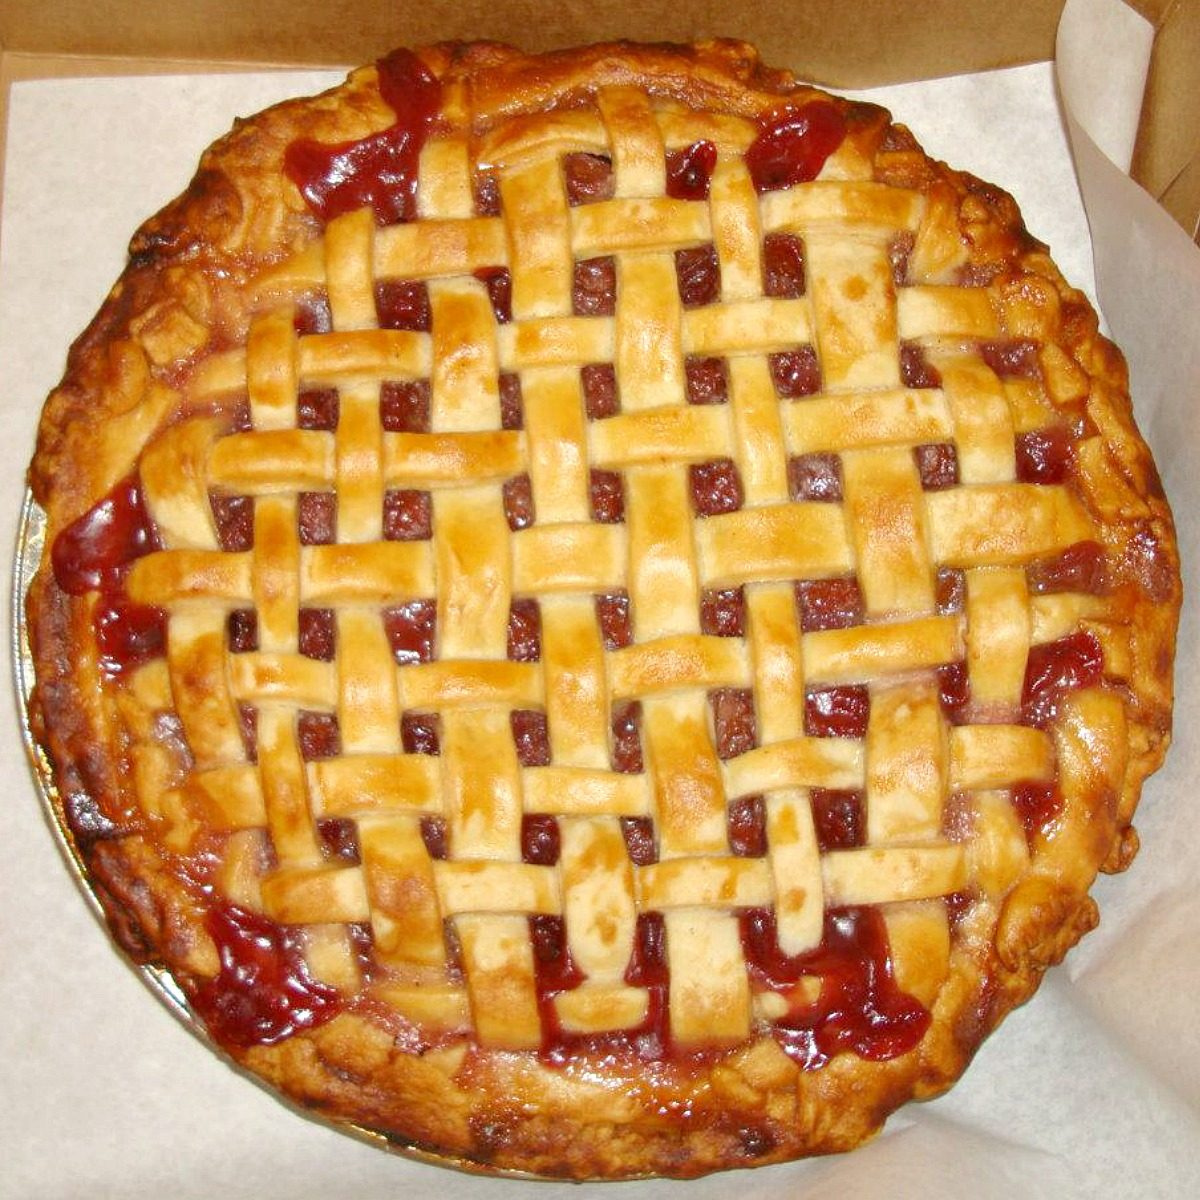 Close-up of a fruit pie